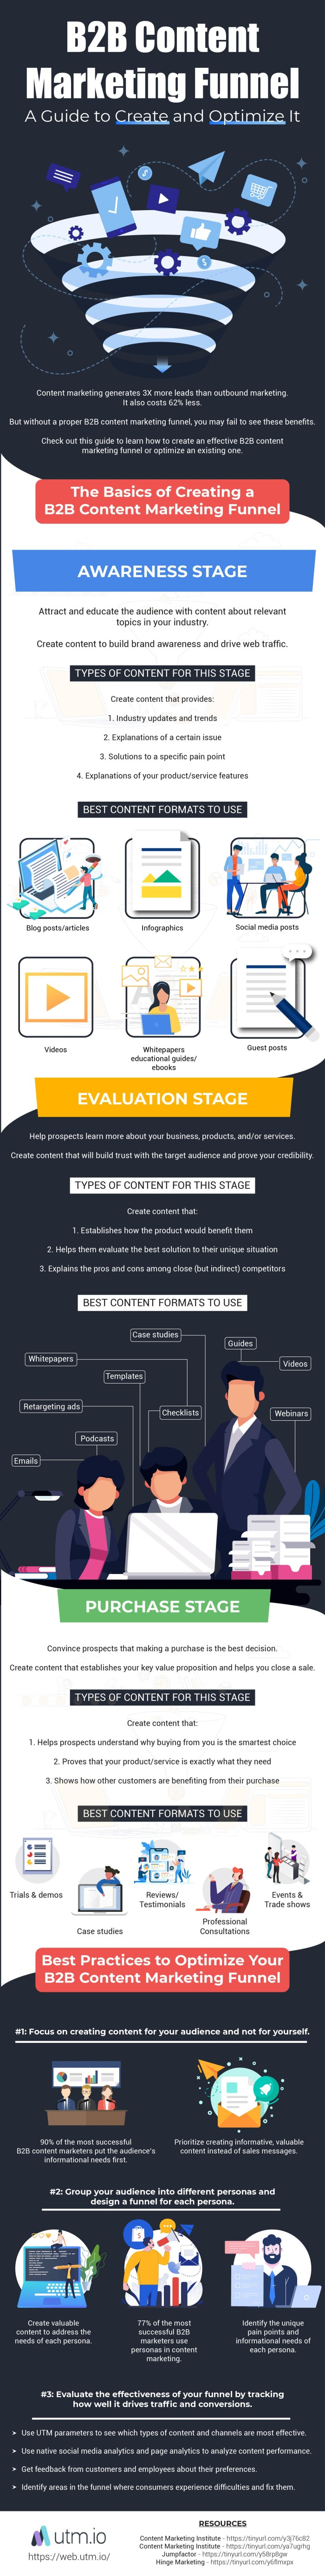 How to Create a High-Performing B2B Content Marketing Funnel